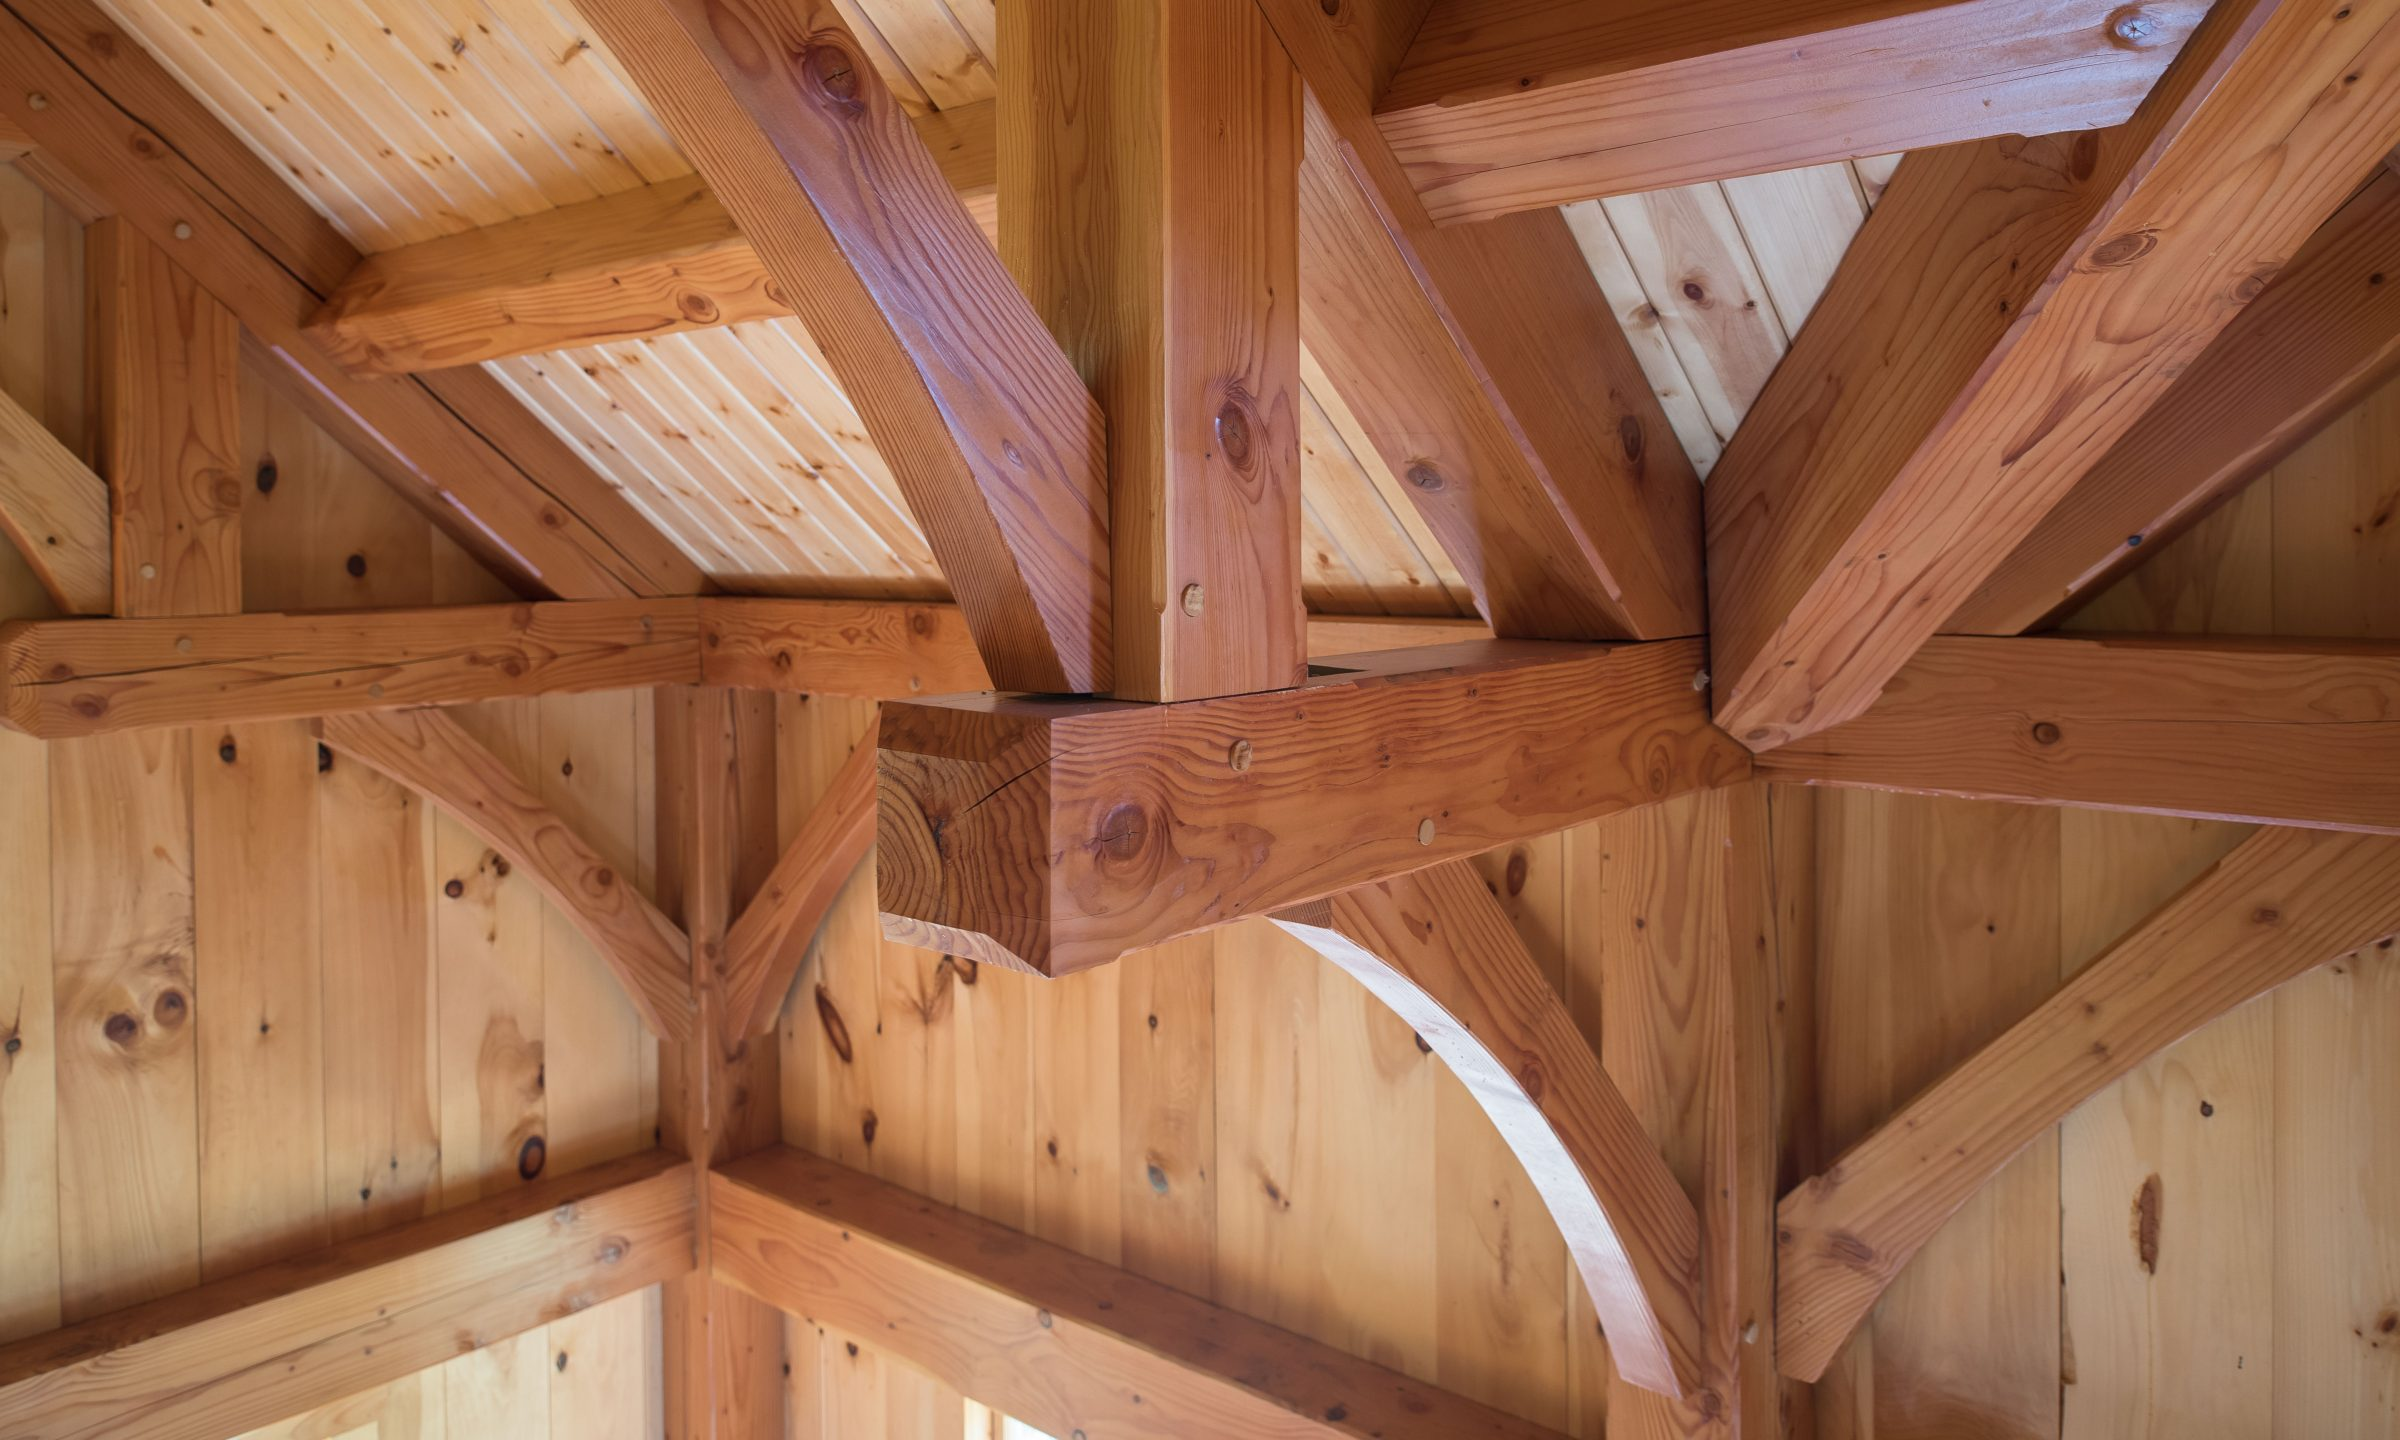 Timber frame detail view